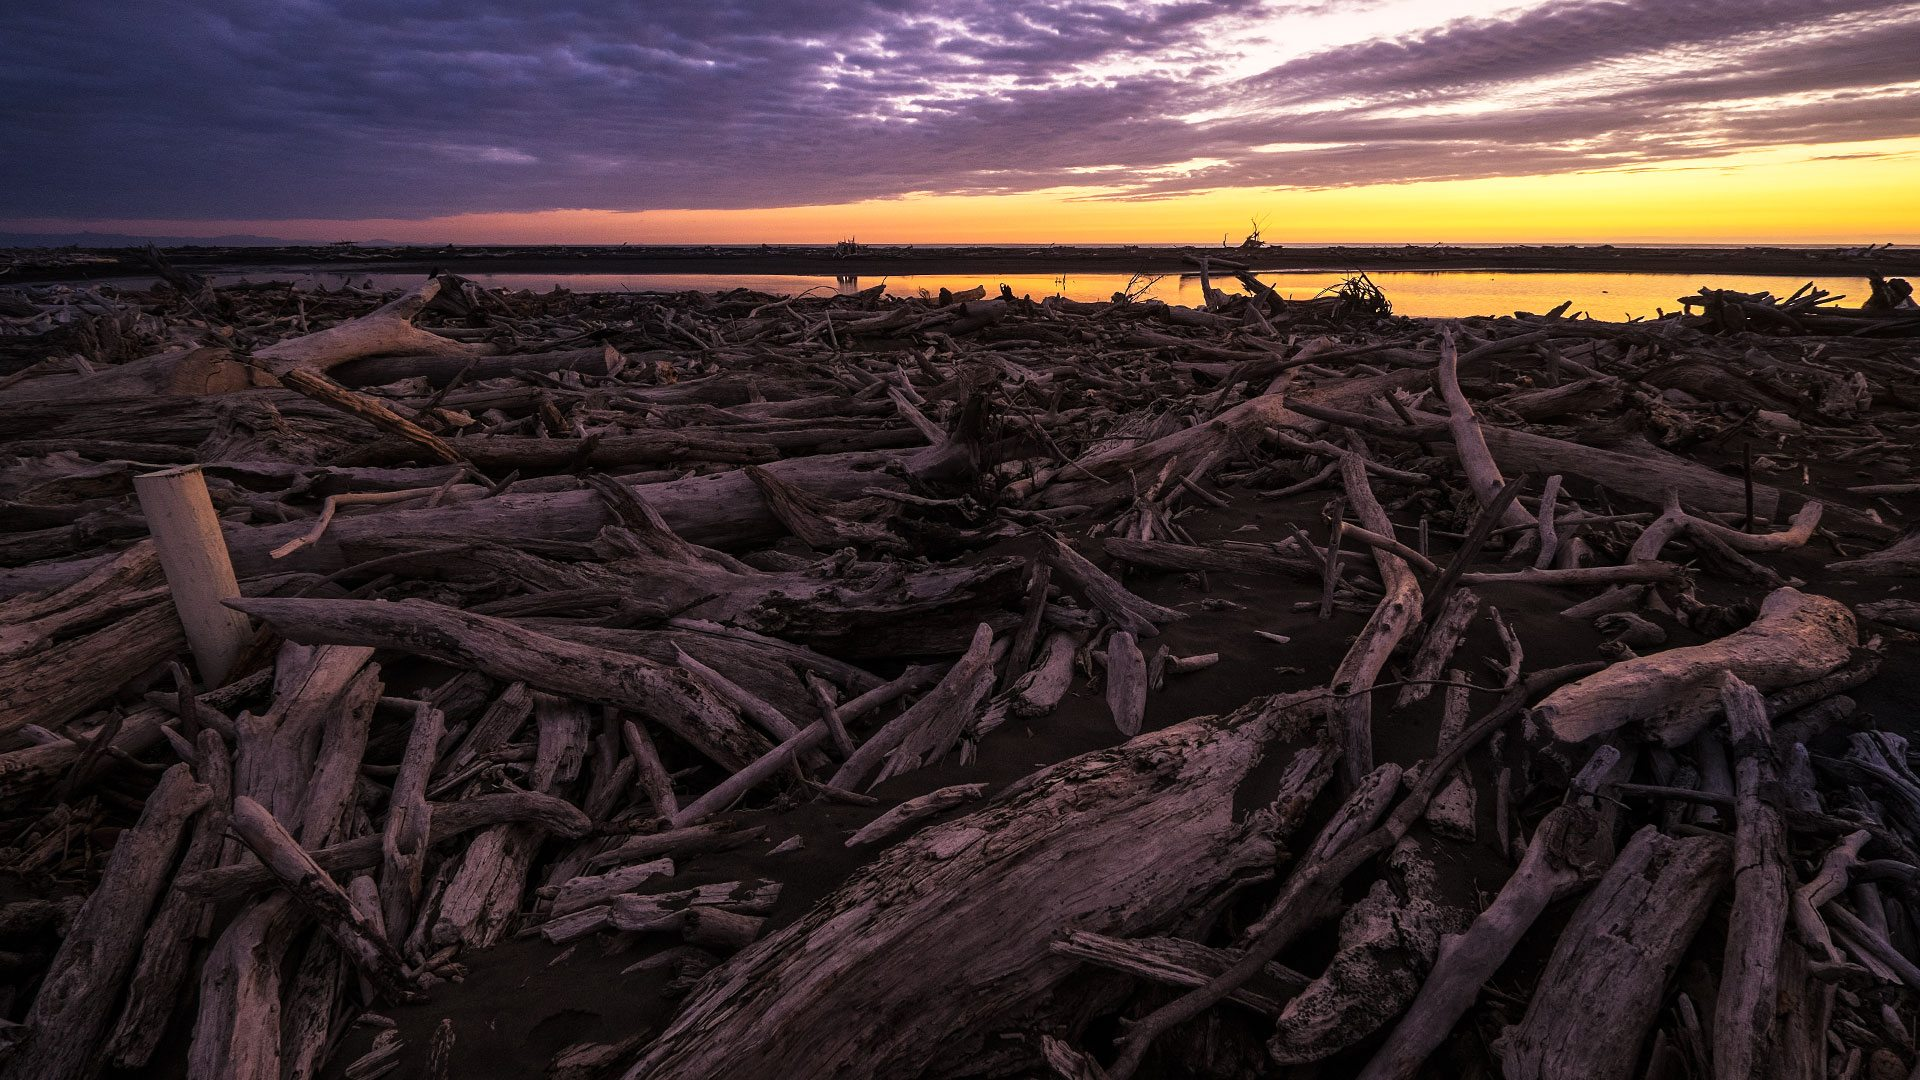 Driftwood, Koitiata Beach, New Zealand